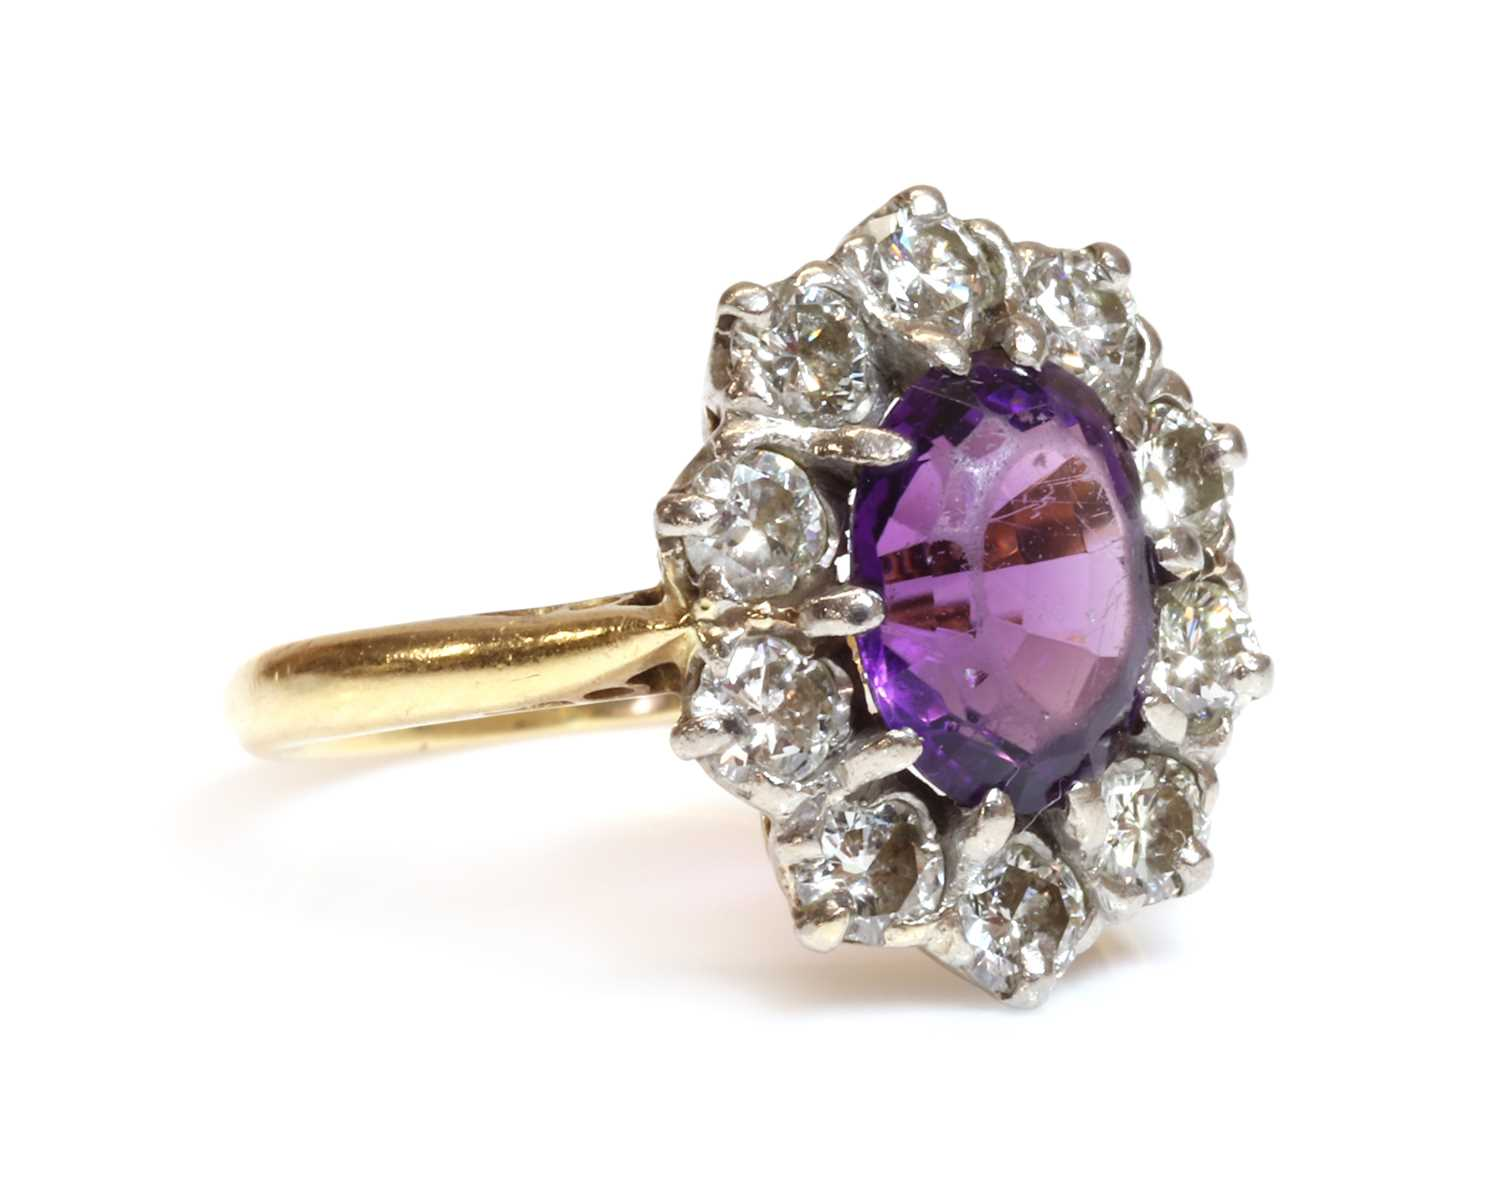 Lot 69 - An 18ct gold amethyst and diamond cluster ring, by Arthur & Co., c.1970